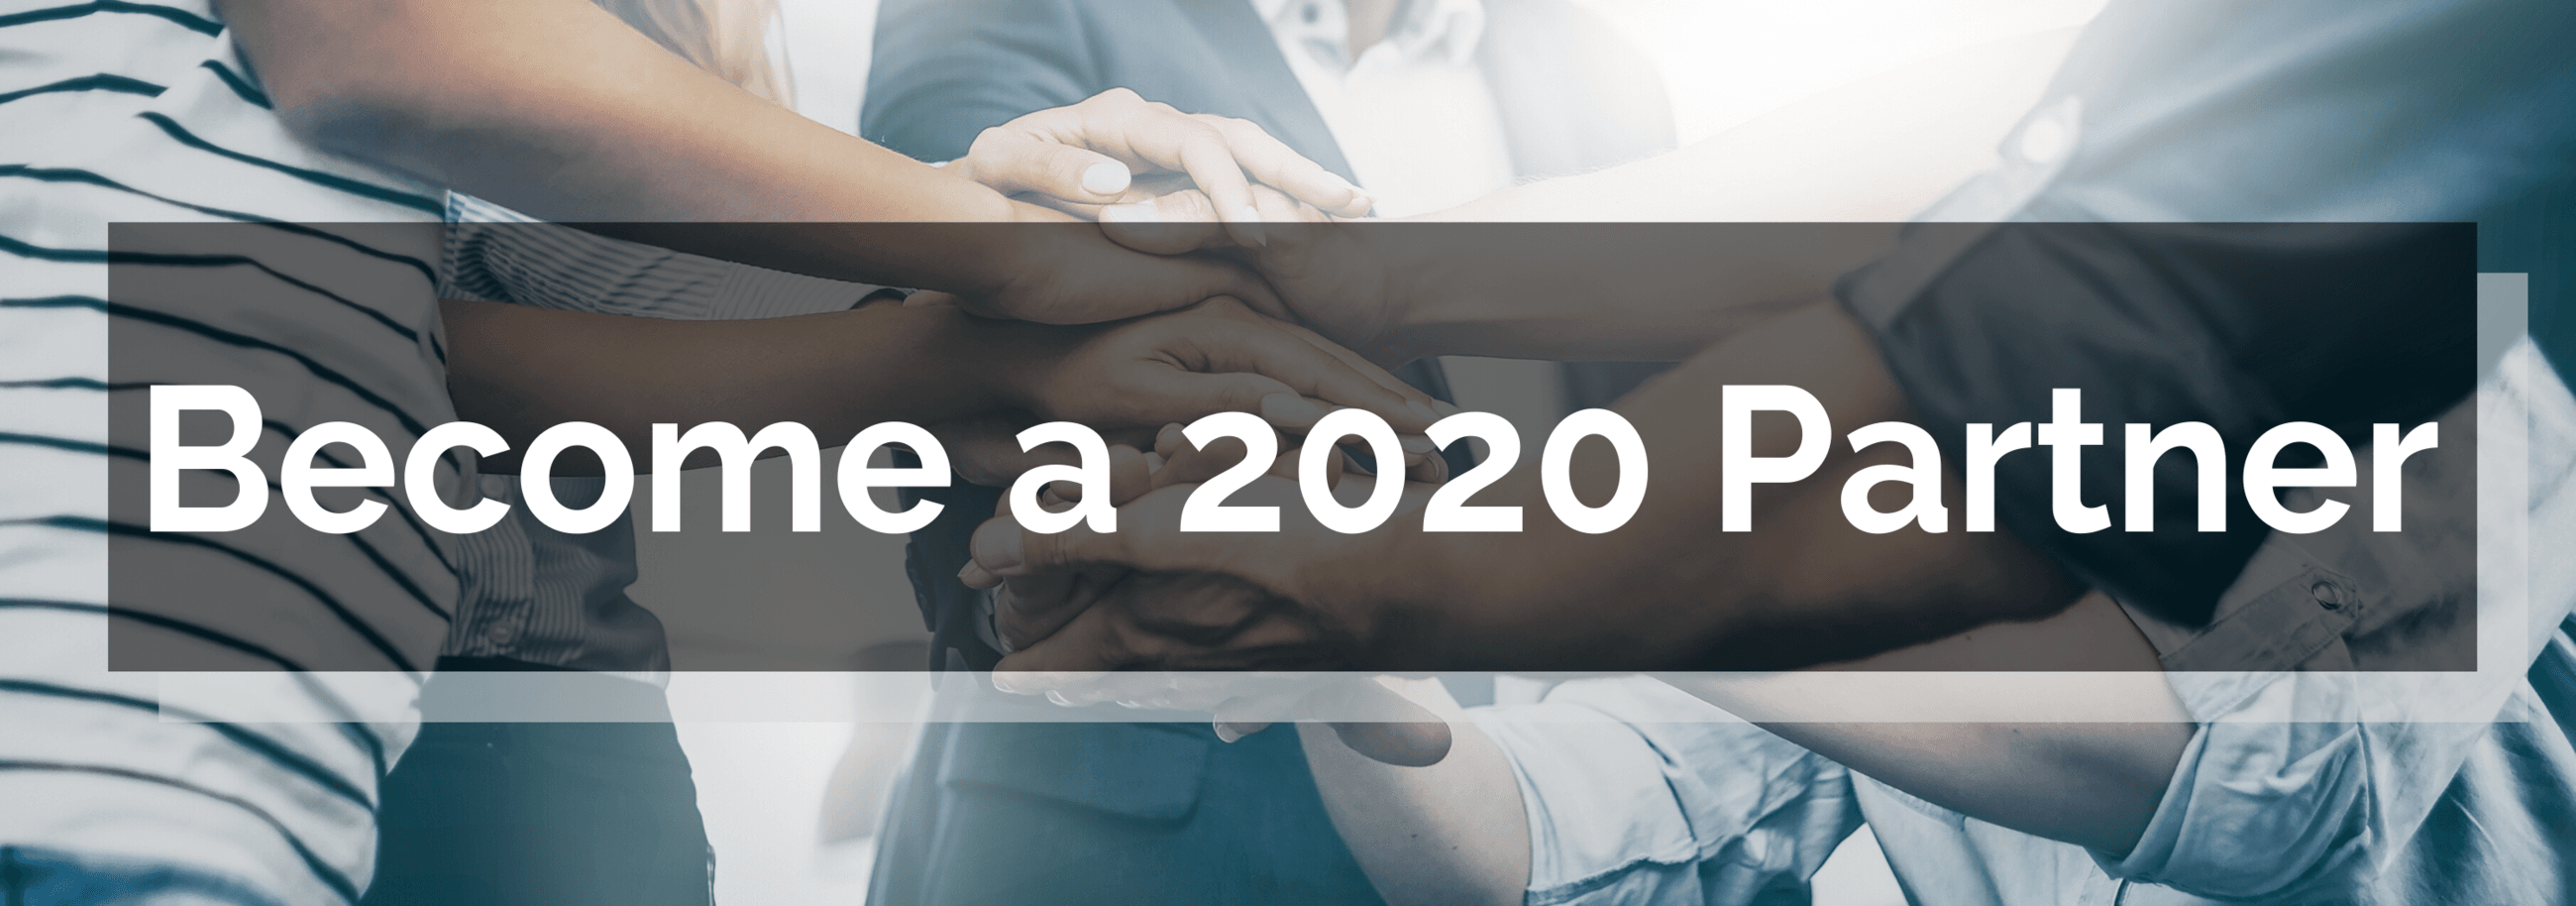 Census 2020 Partner banner